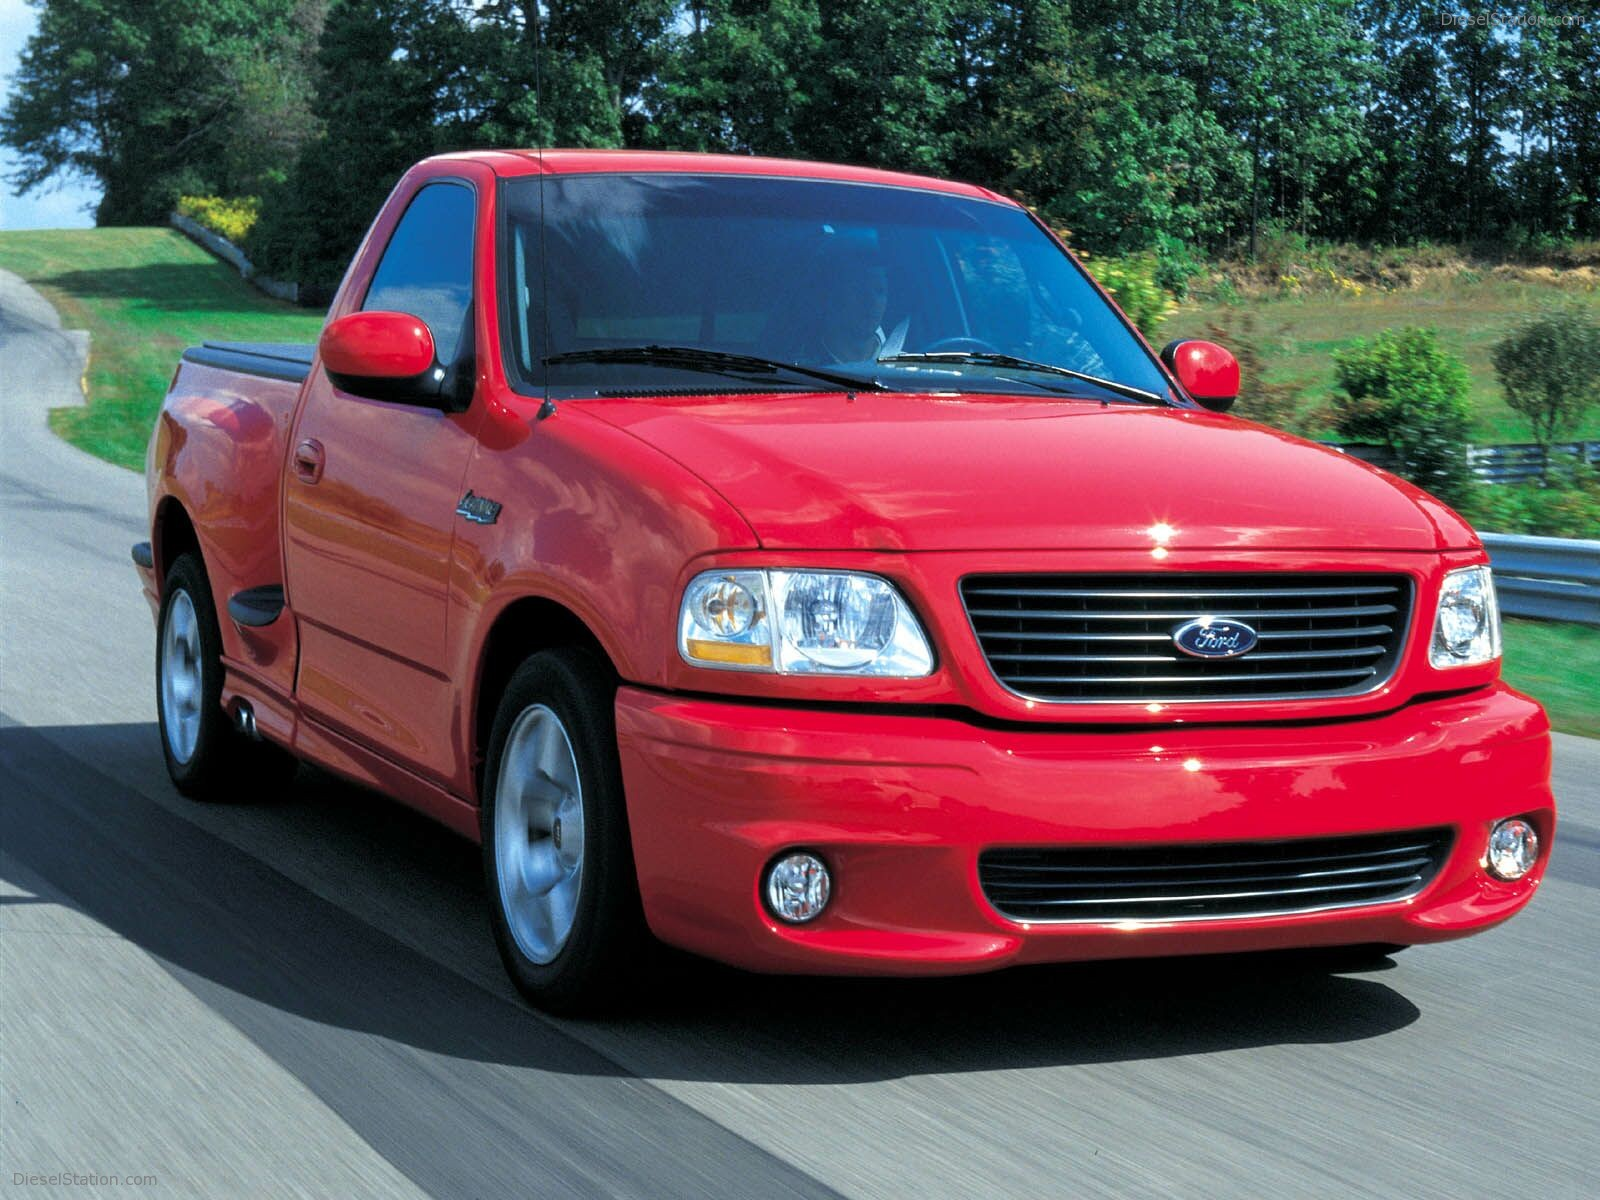 Ford F-150, Ford, Ford F, Ford  red